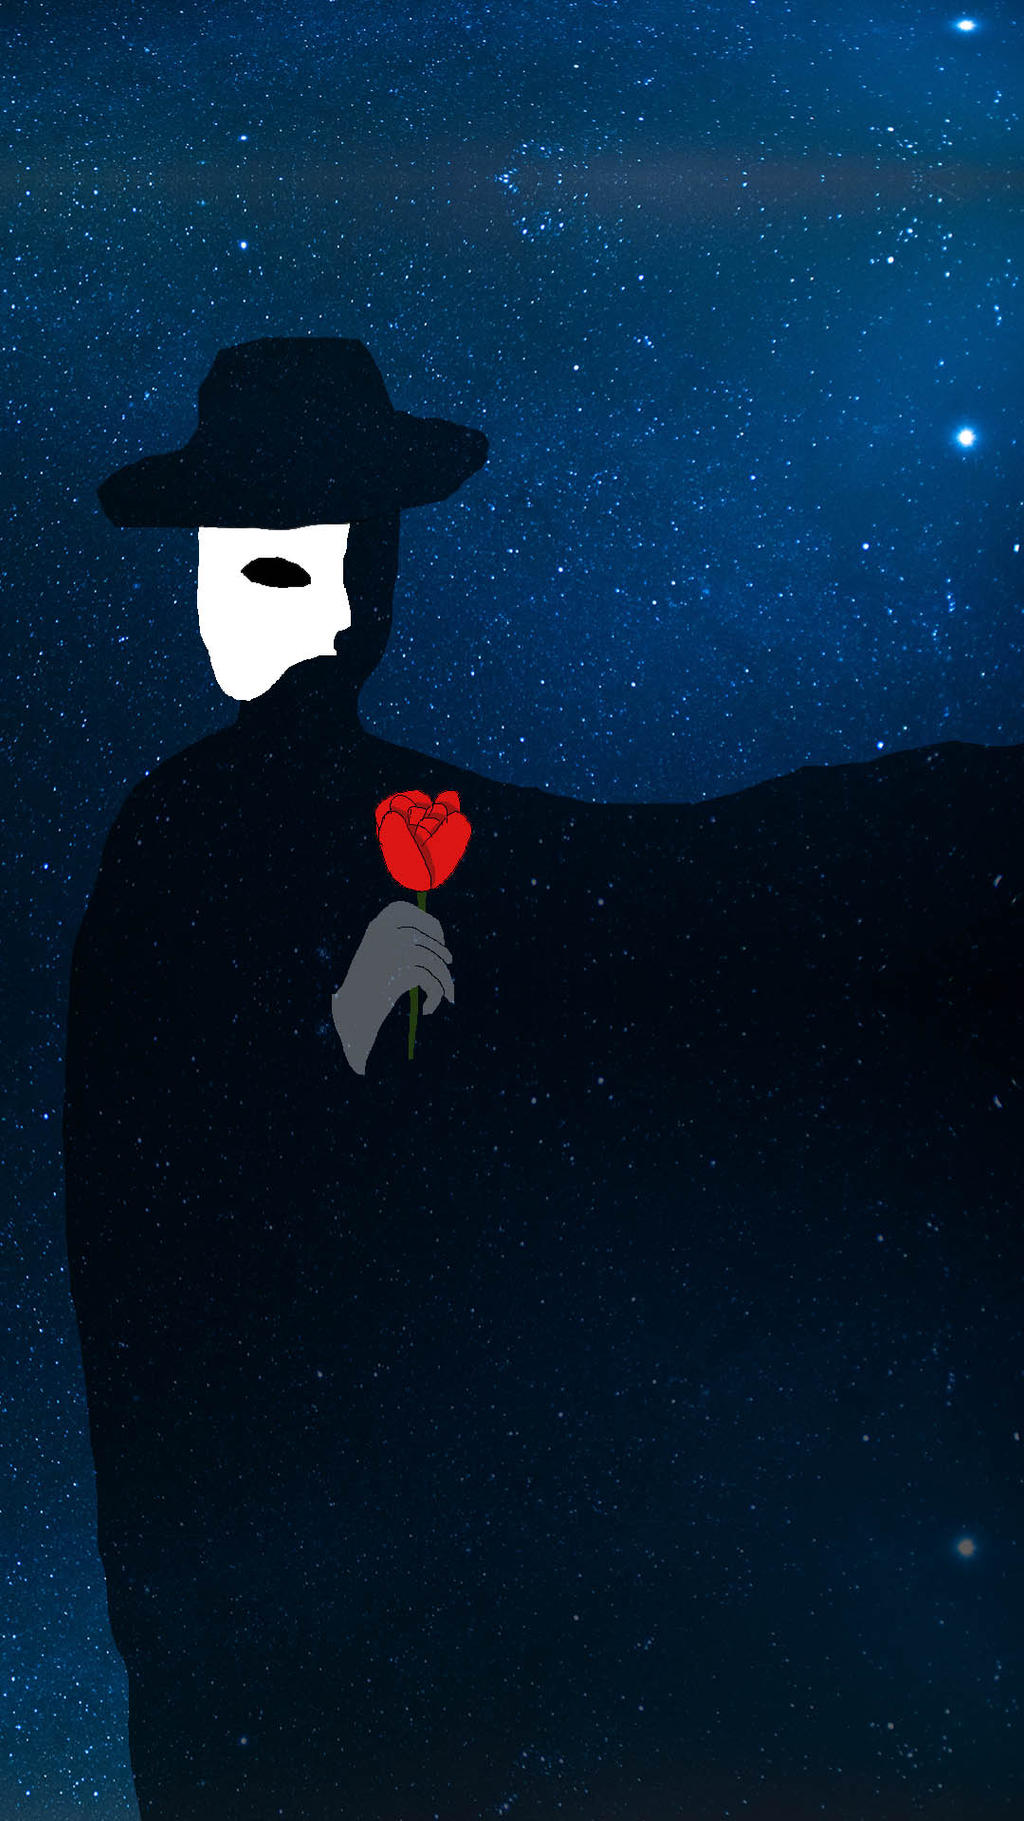 Phantom Of The Opera Phone Wallpaper By Shadowed Dancer On Deviantart